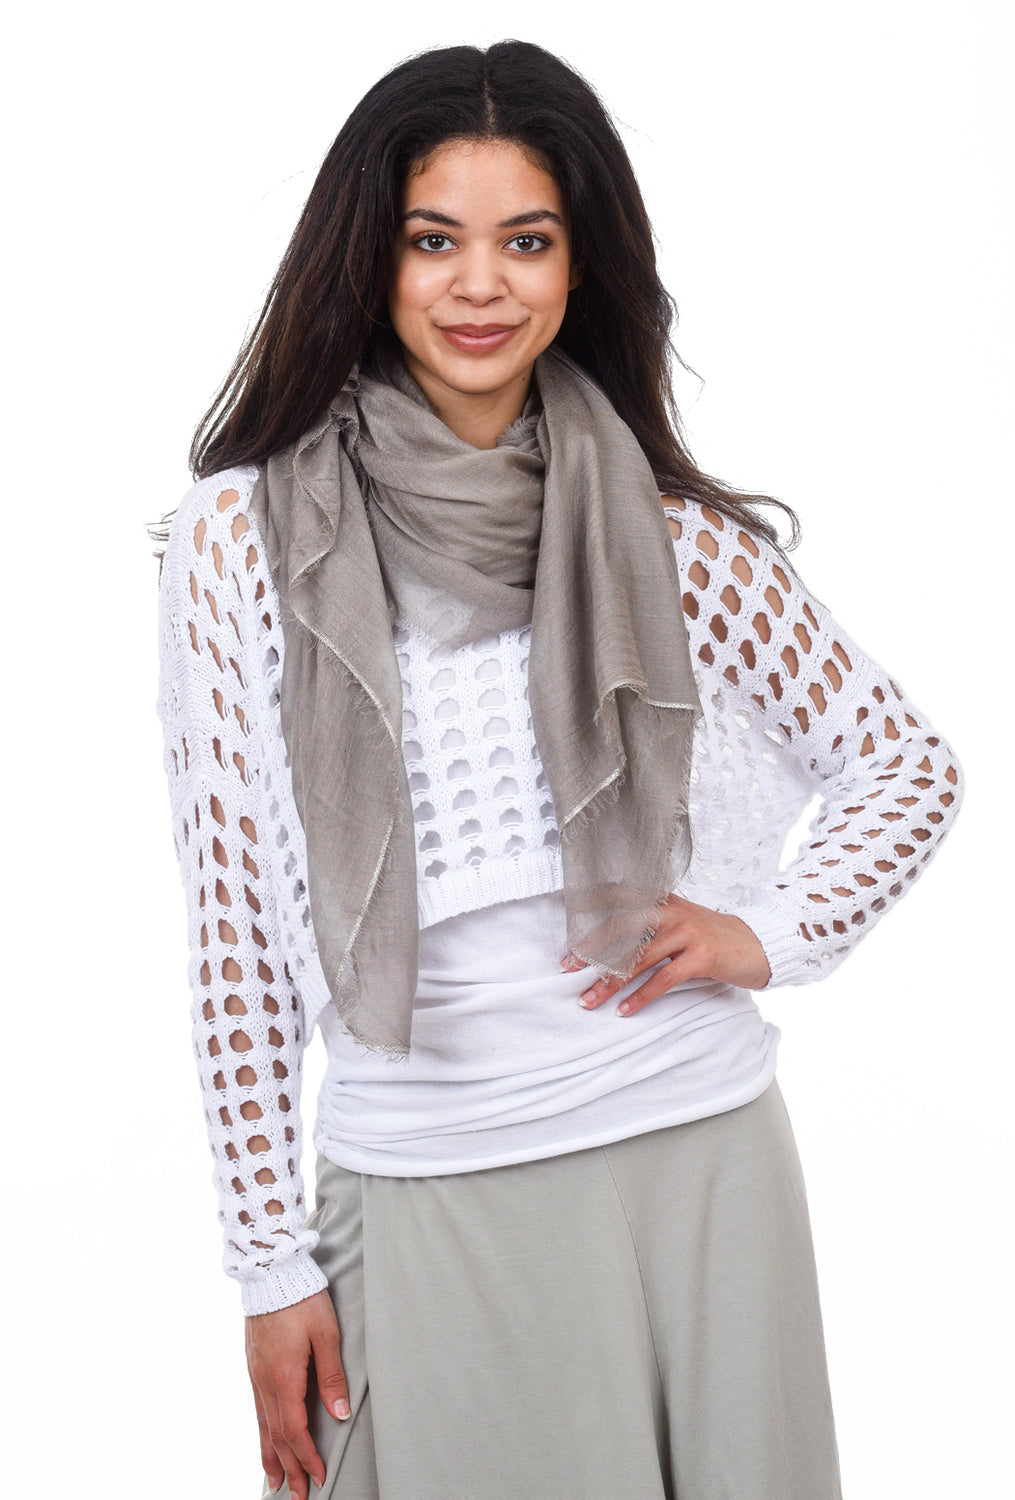 Blue Pacific Cashmere Glitter Scarf, Desert Taupe One Size Taupe